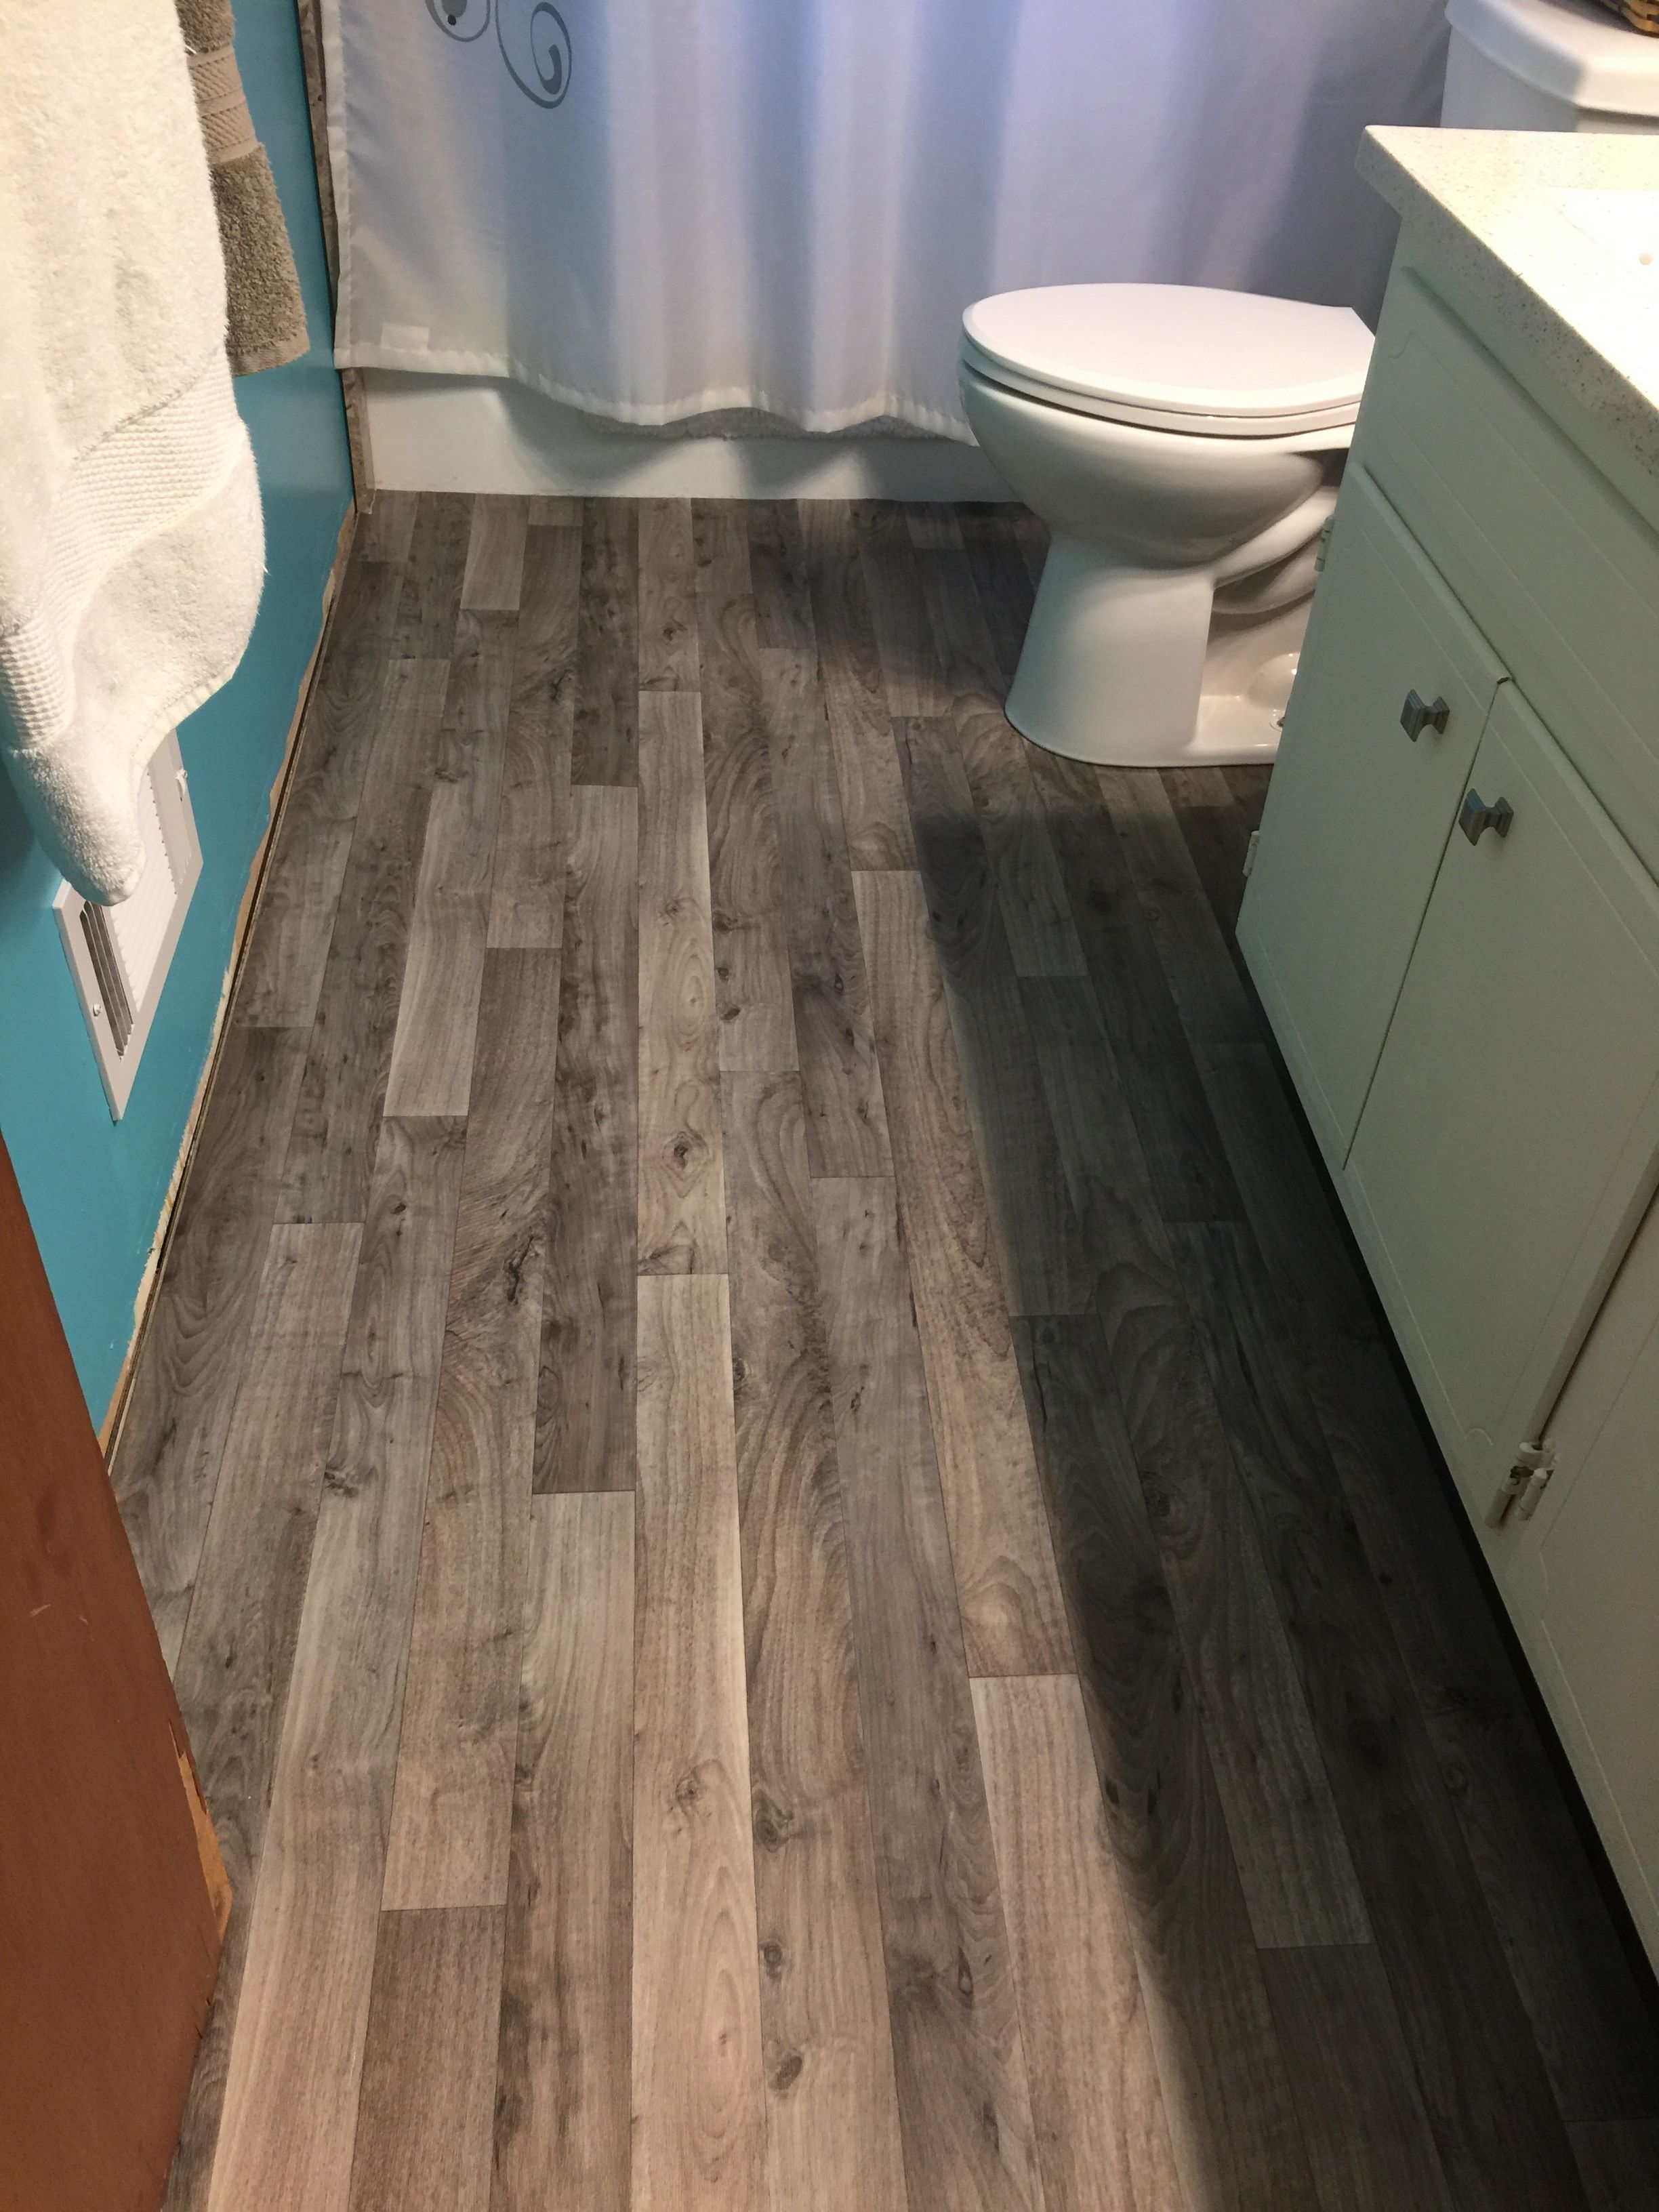 resistant a idea menards post attachment weeklywarning collection floors with water dream home decor river laminate of room elm flip flooring ideas design family galerie madison related